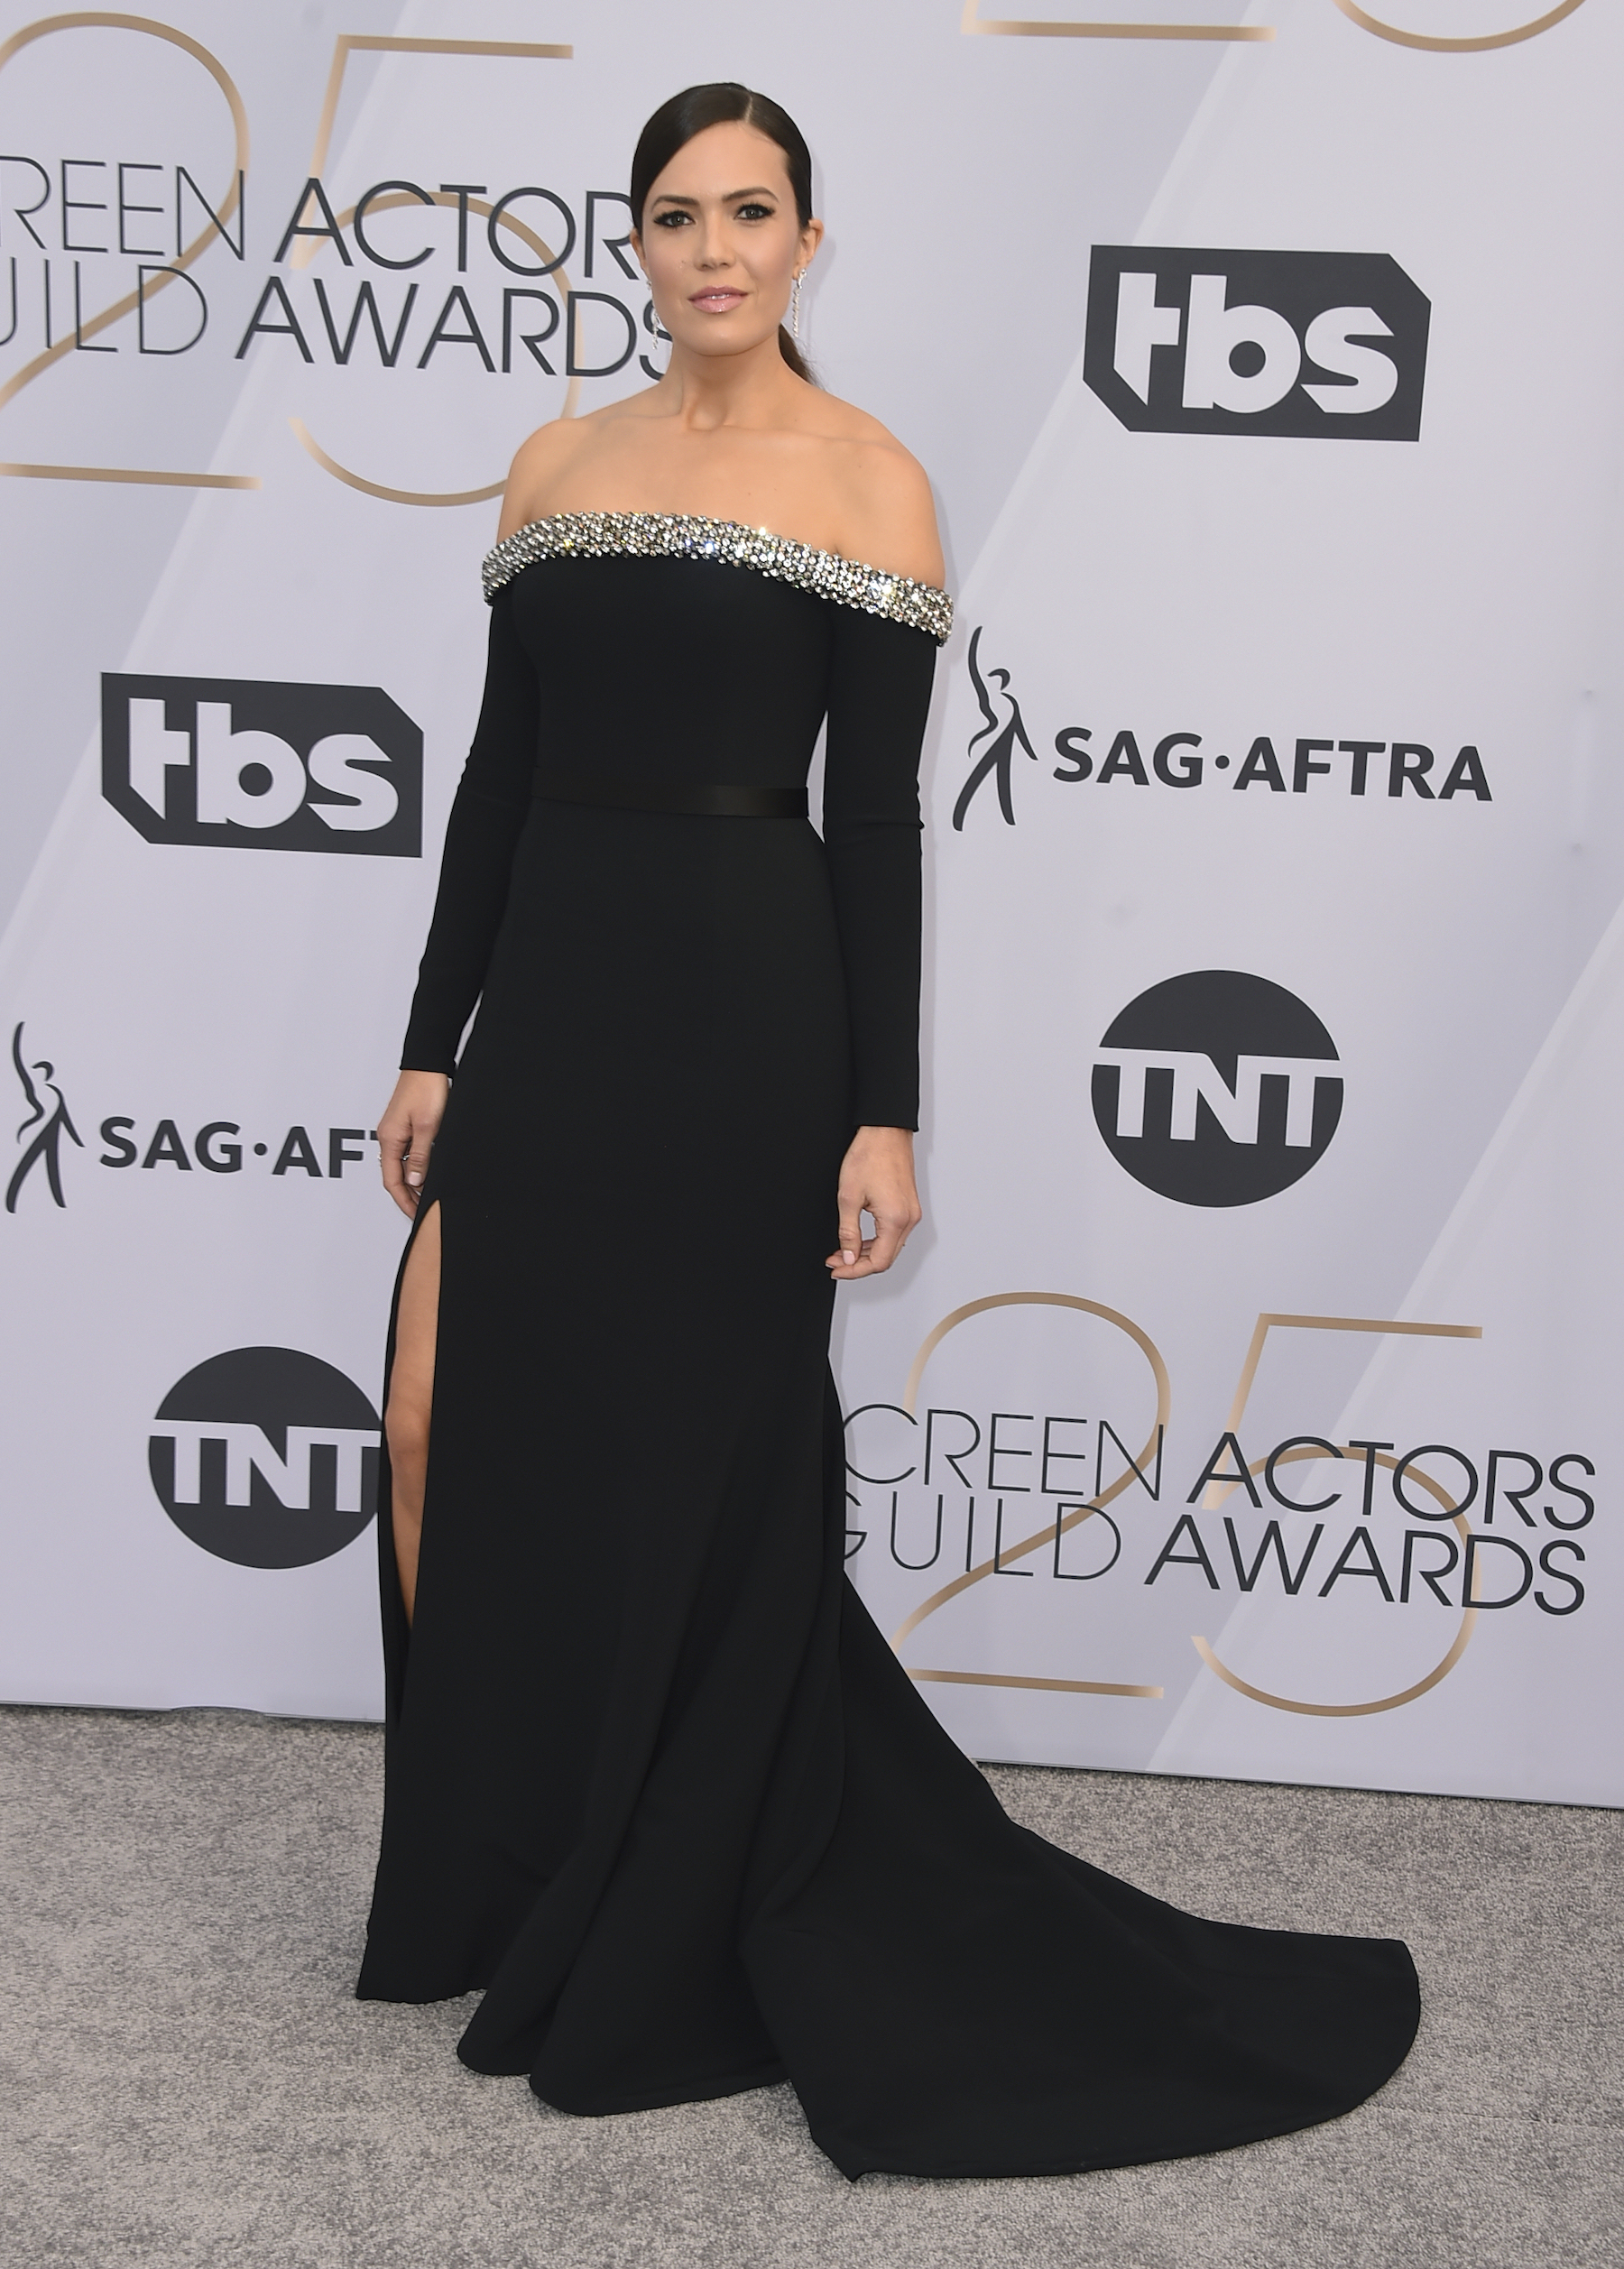 "<div class=""meta image-caption""><div class=""origin-logo origin-image ap""><span>AP</span></div><span class=""caption-text"">Mandy Moore arrives at the 25th annual Screen Actors Guild Awards at the Shrine Auditorium & Expo Hall on Sunday, Jan. 27, 2019, in Los Angeles. (Jordan Strauss/Invision/AP)</span></div>"